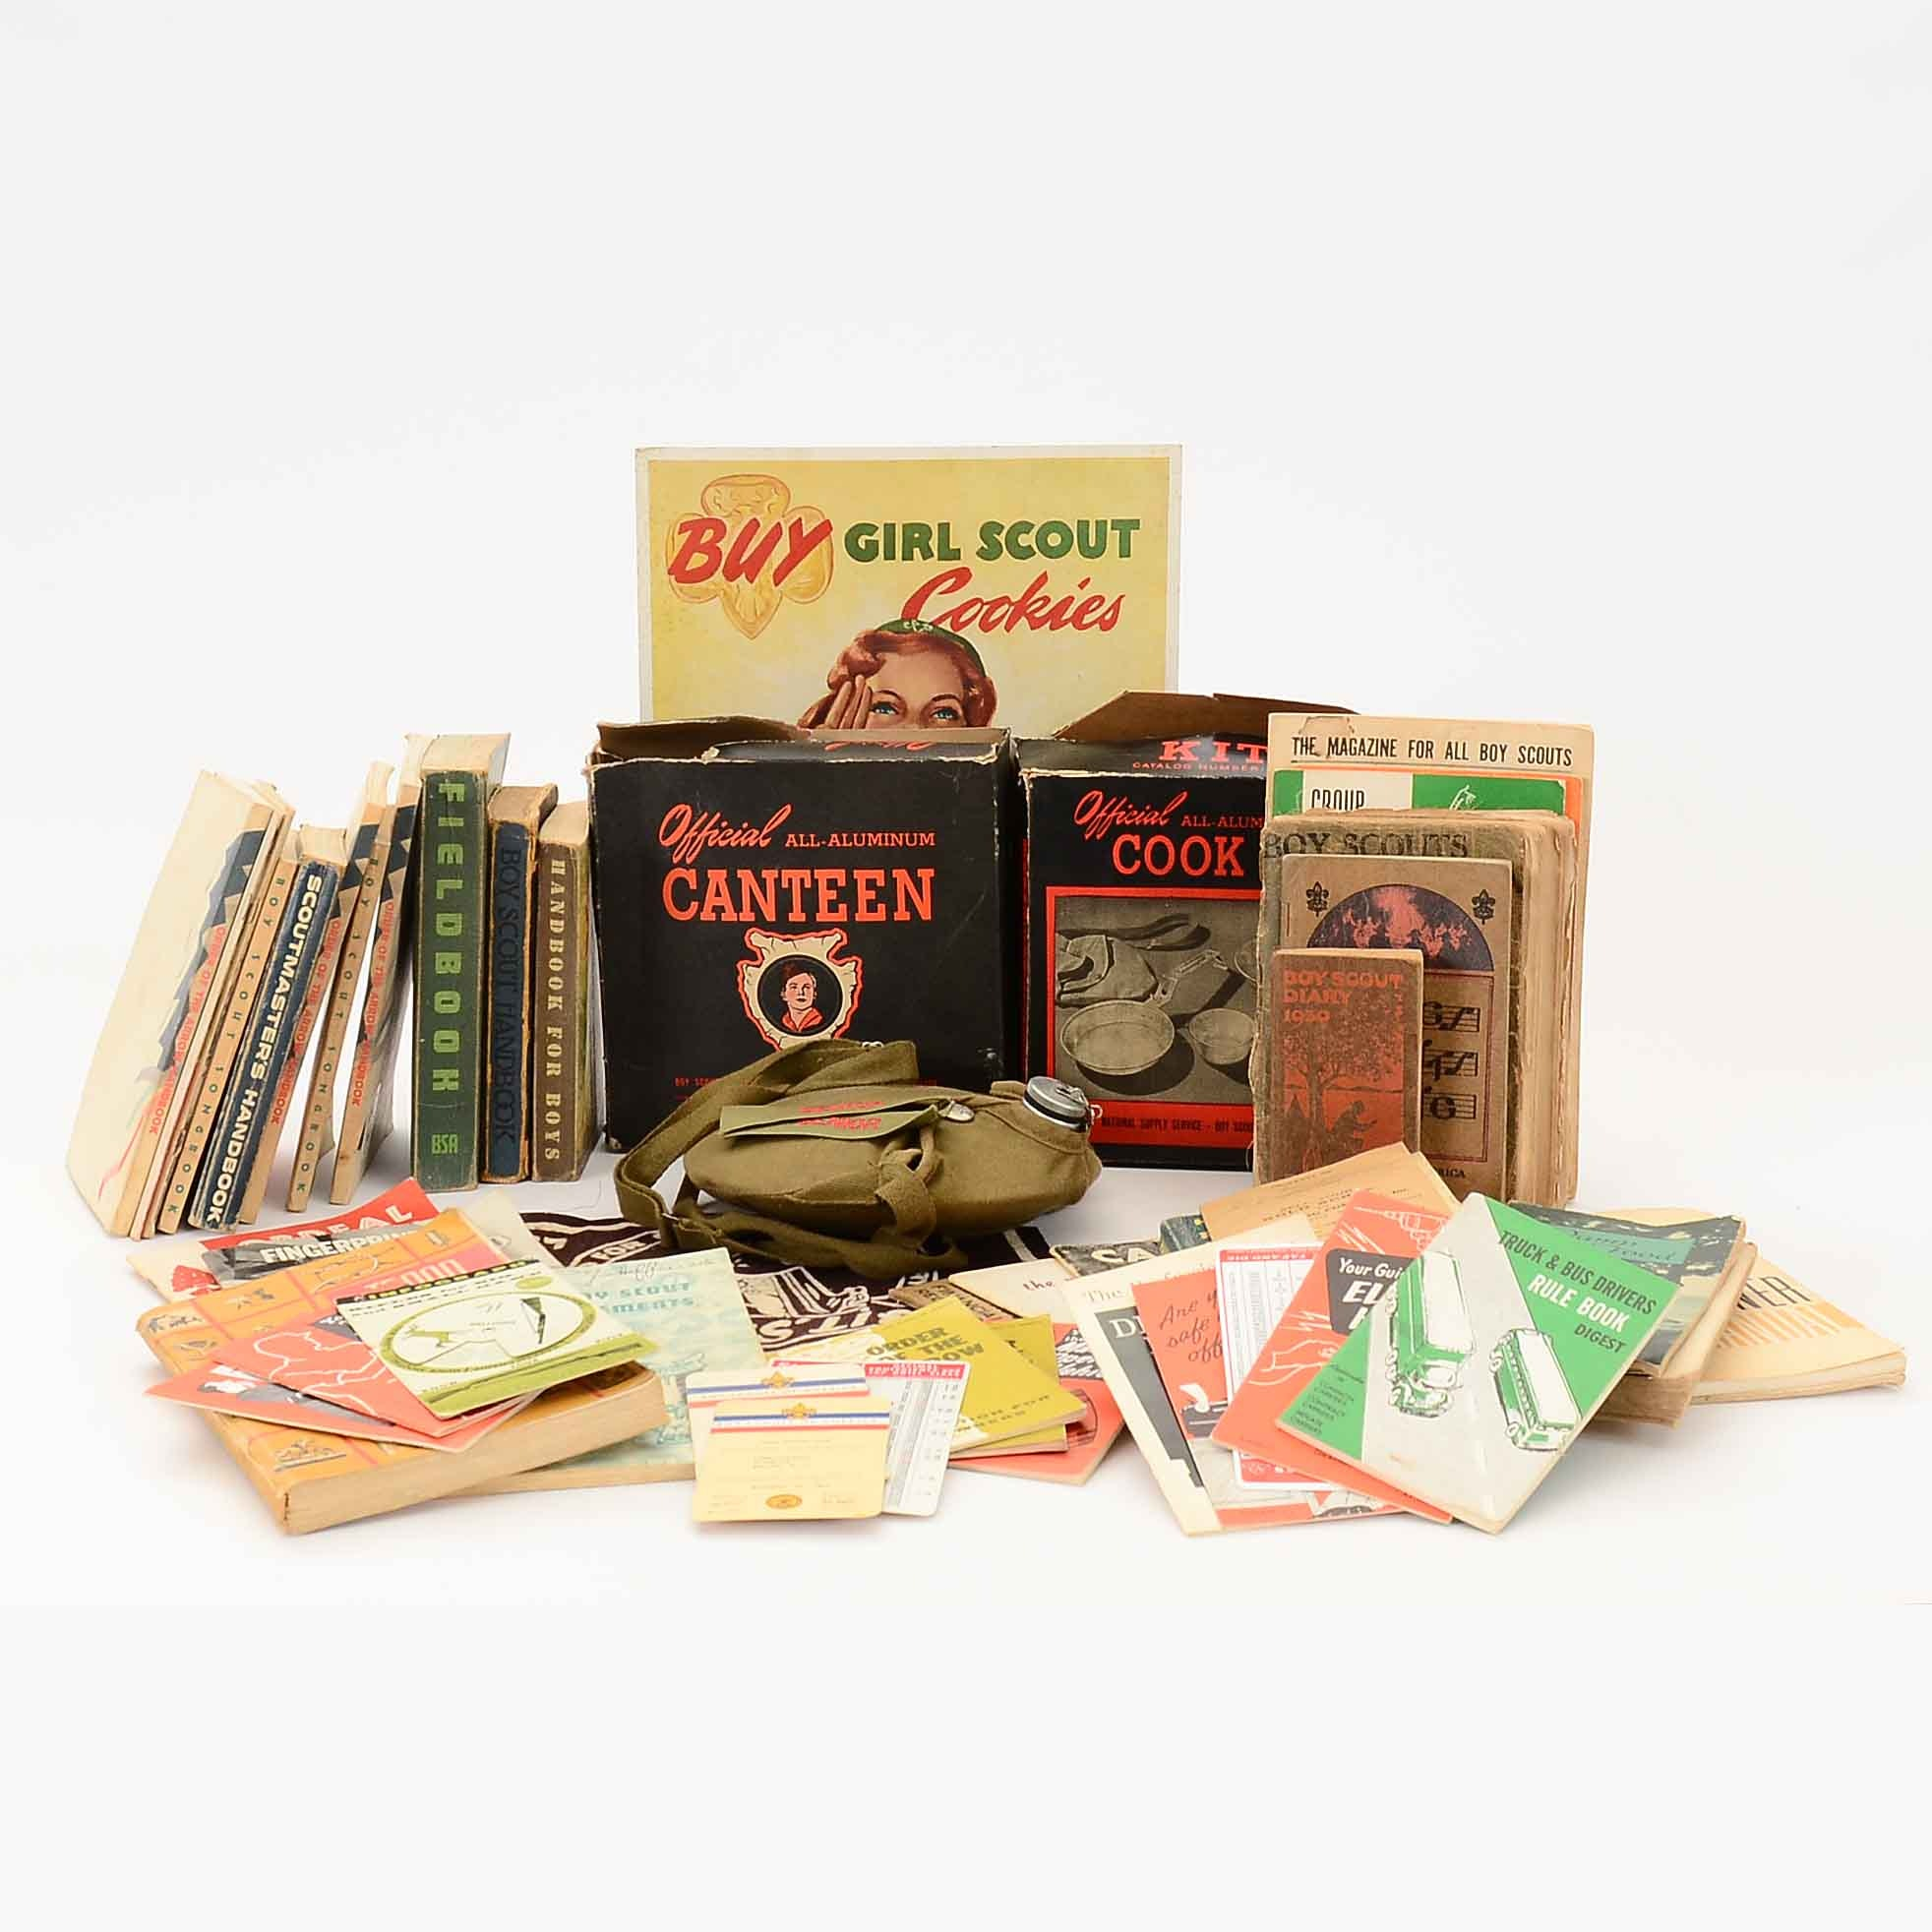 Vintage Boy Scout Memorabilia and Ephemera